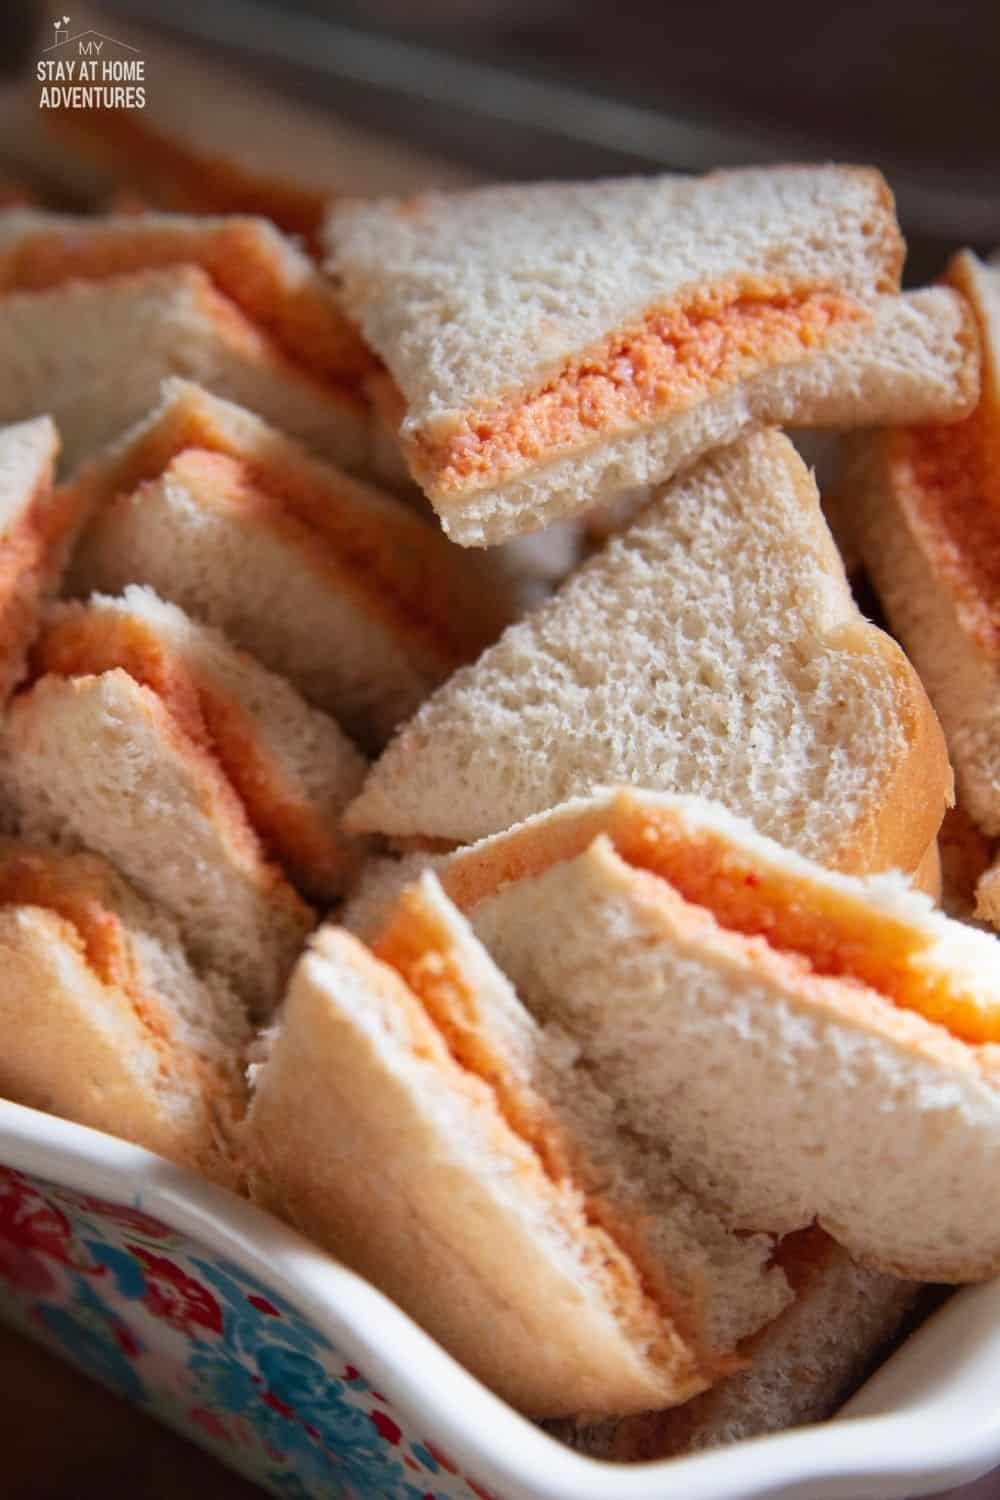 Sandwich de Mezcla is a popular Puerto Rican sandwich that is traditionally made with white sliced bread. They are always served at their parties. via @mystayathome